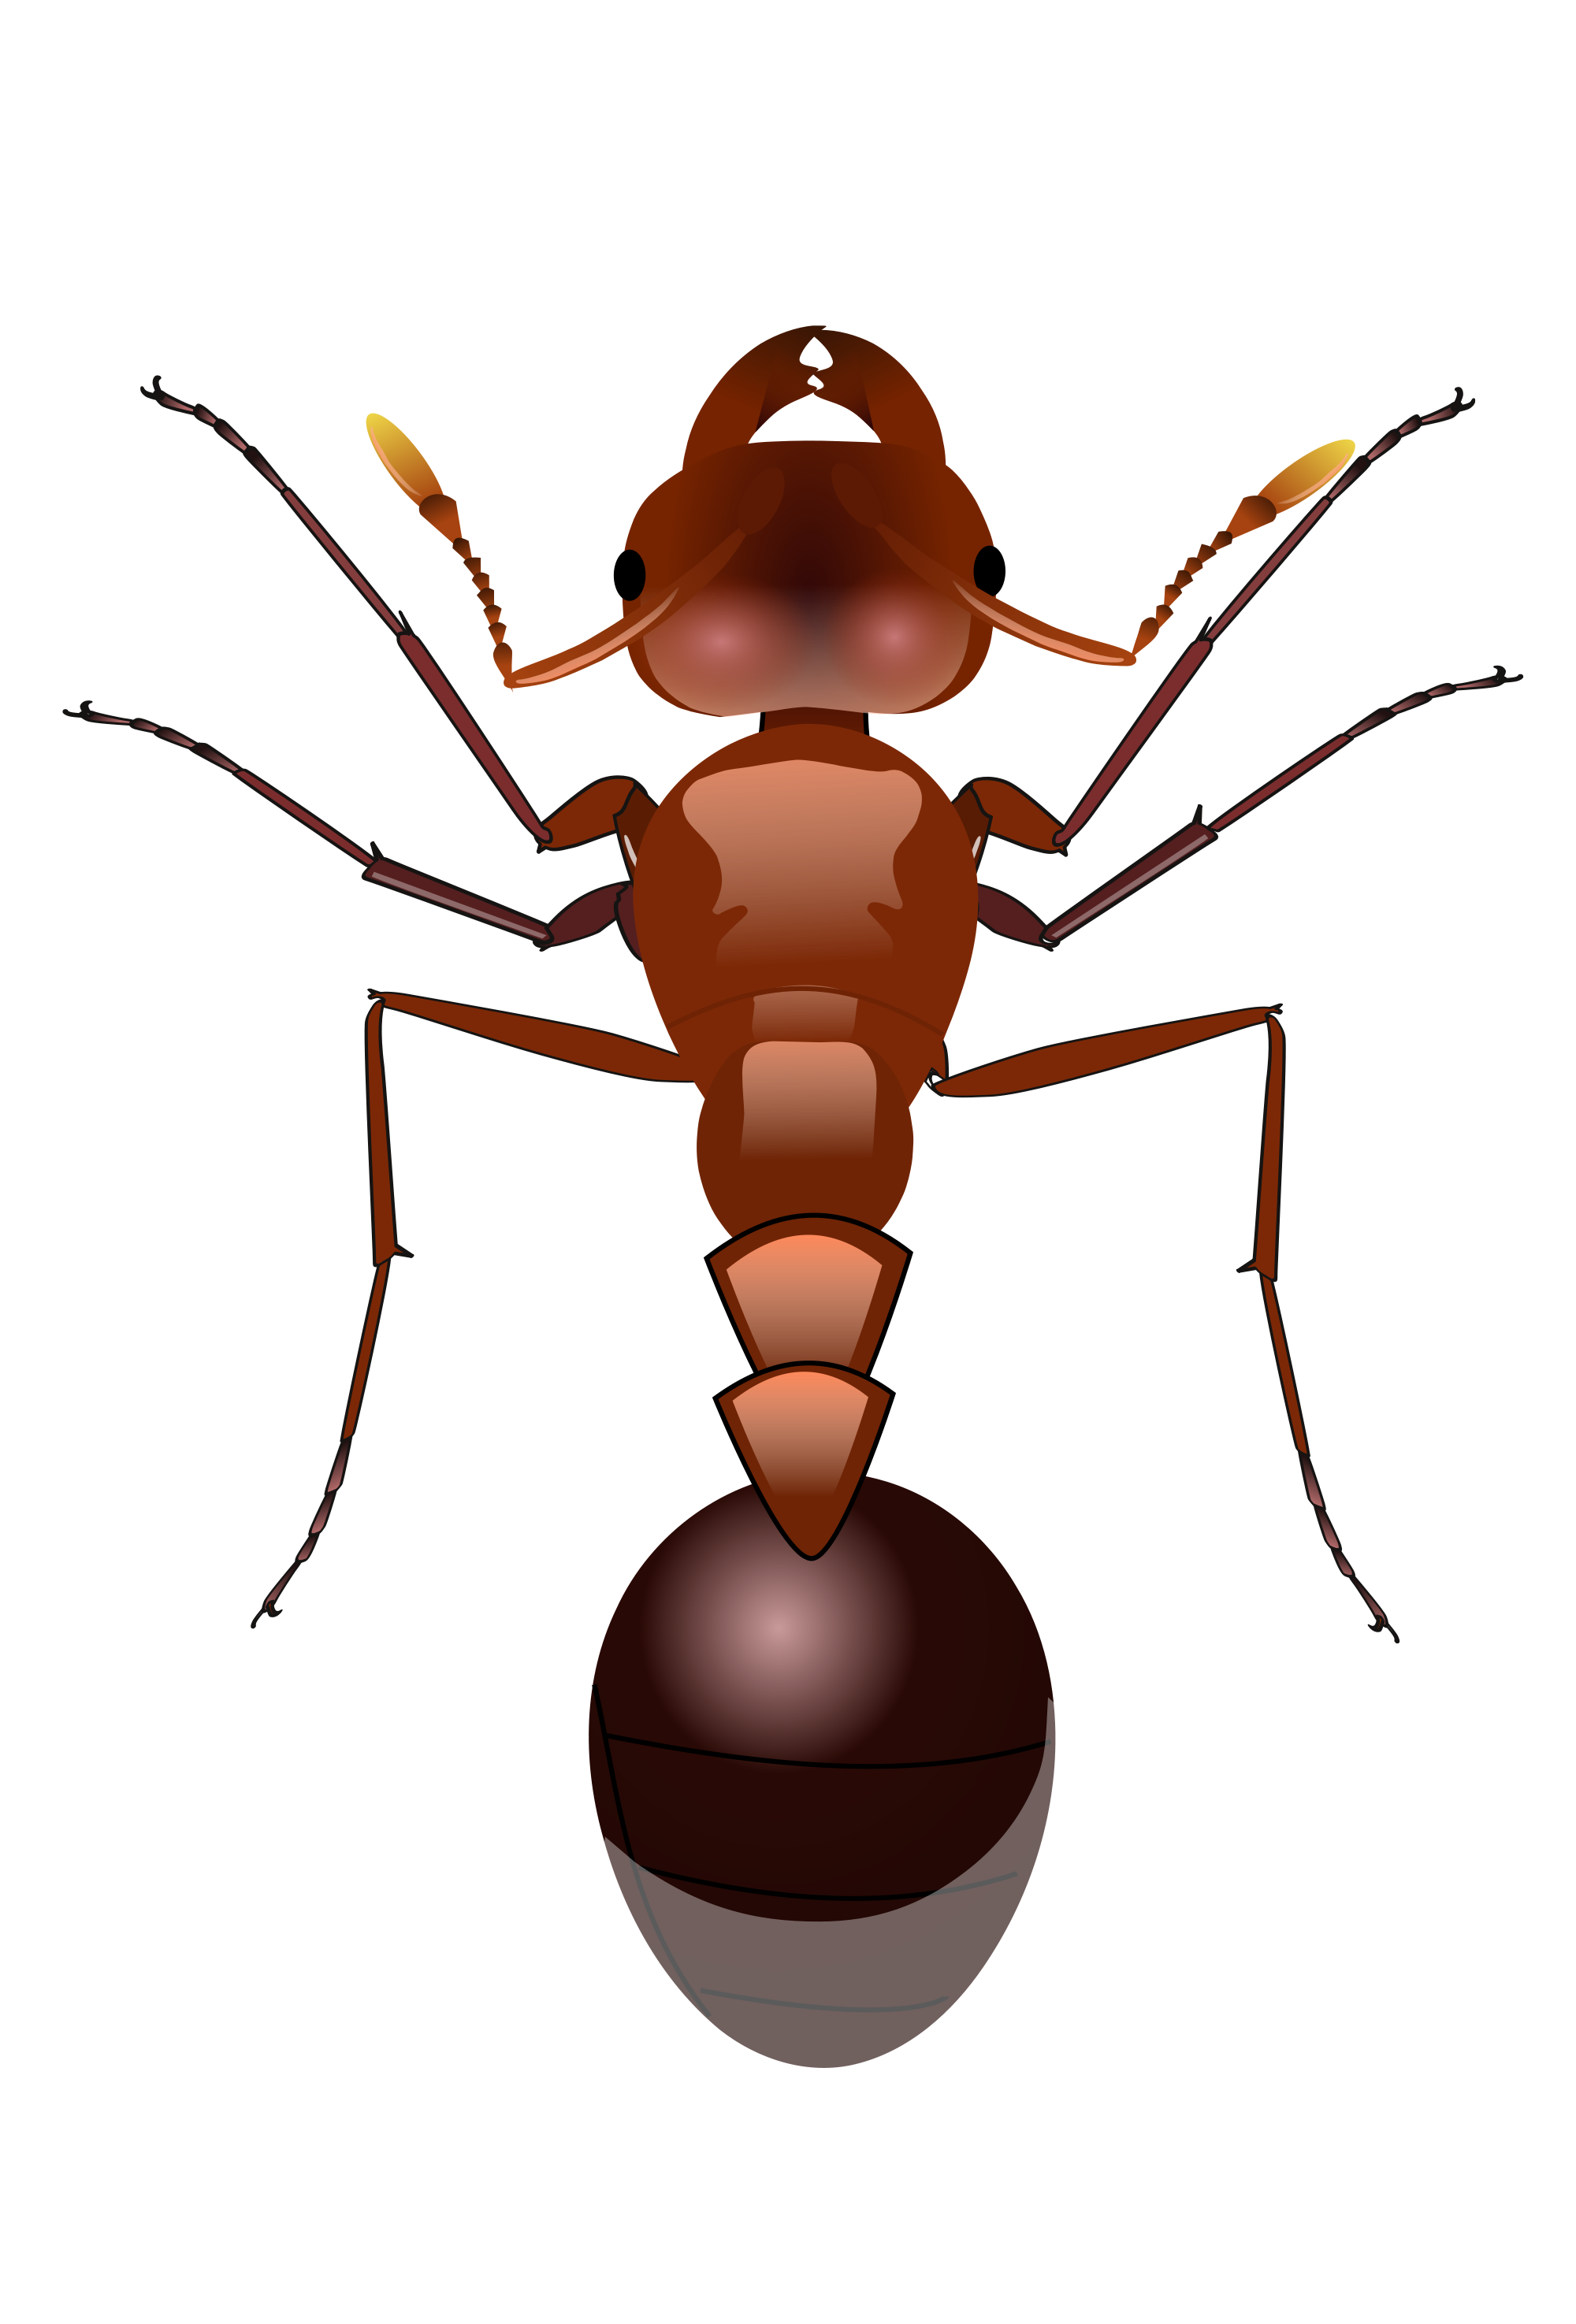 Insects clipart fire ant. Ants png images free